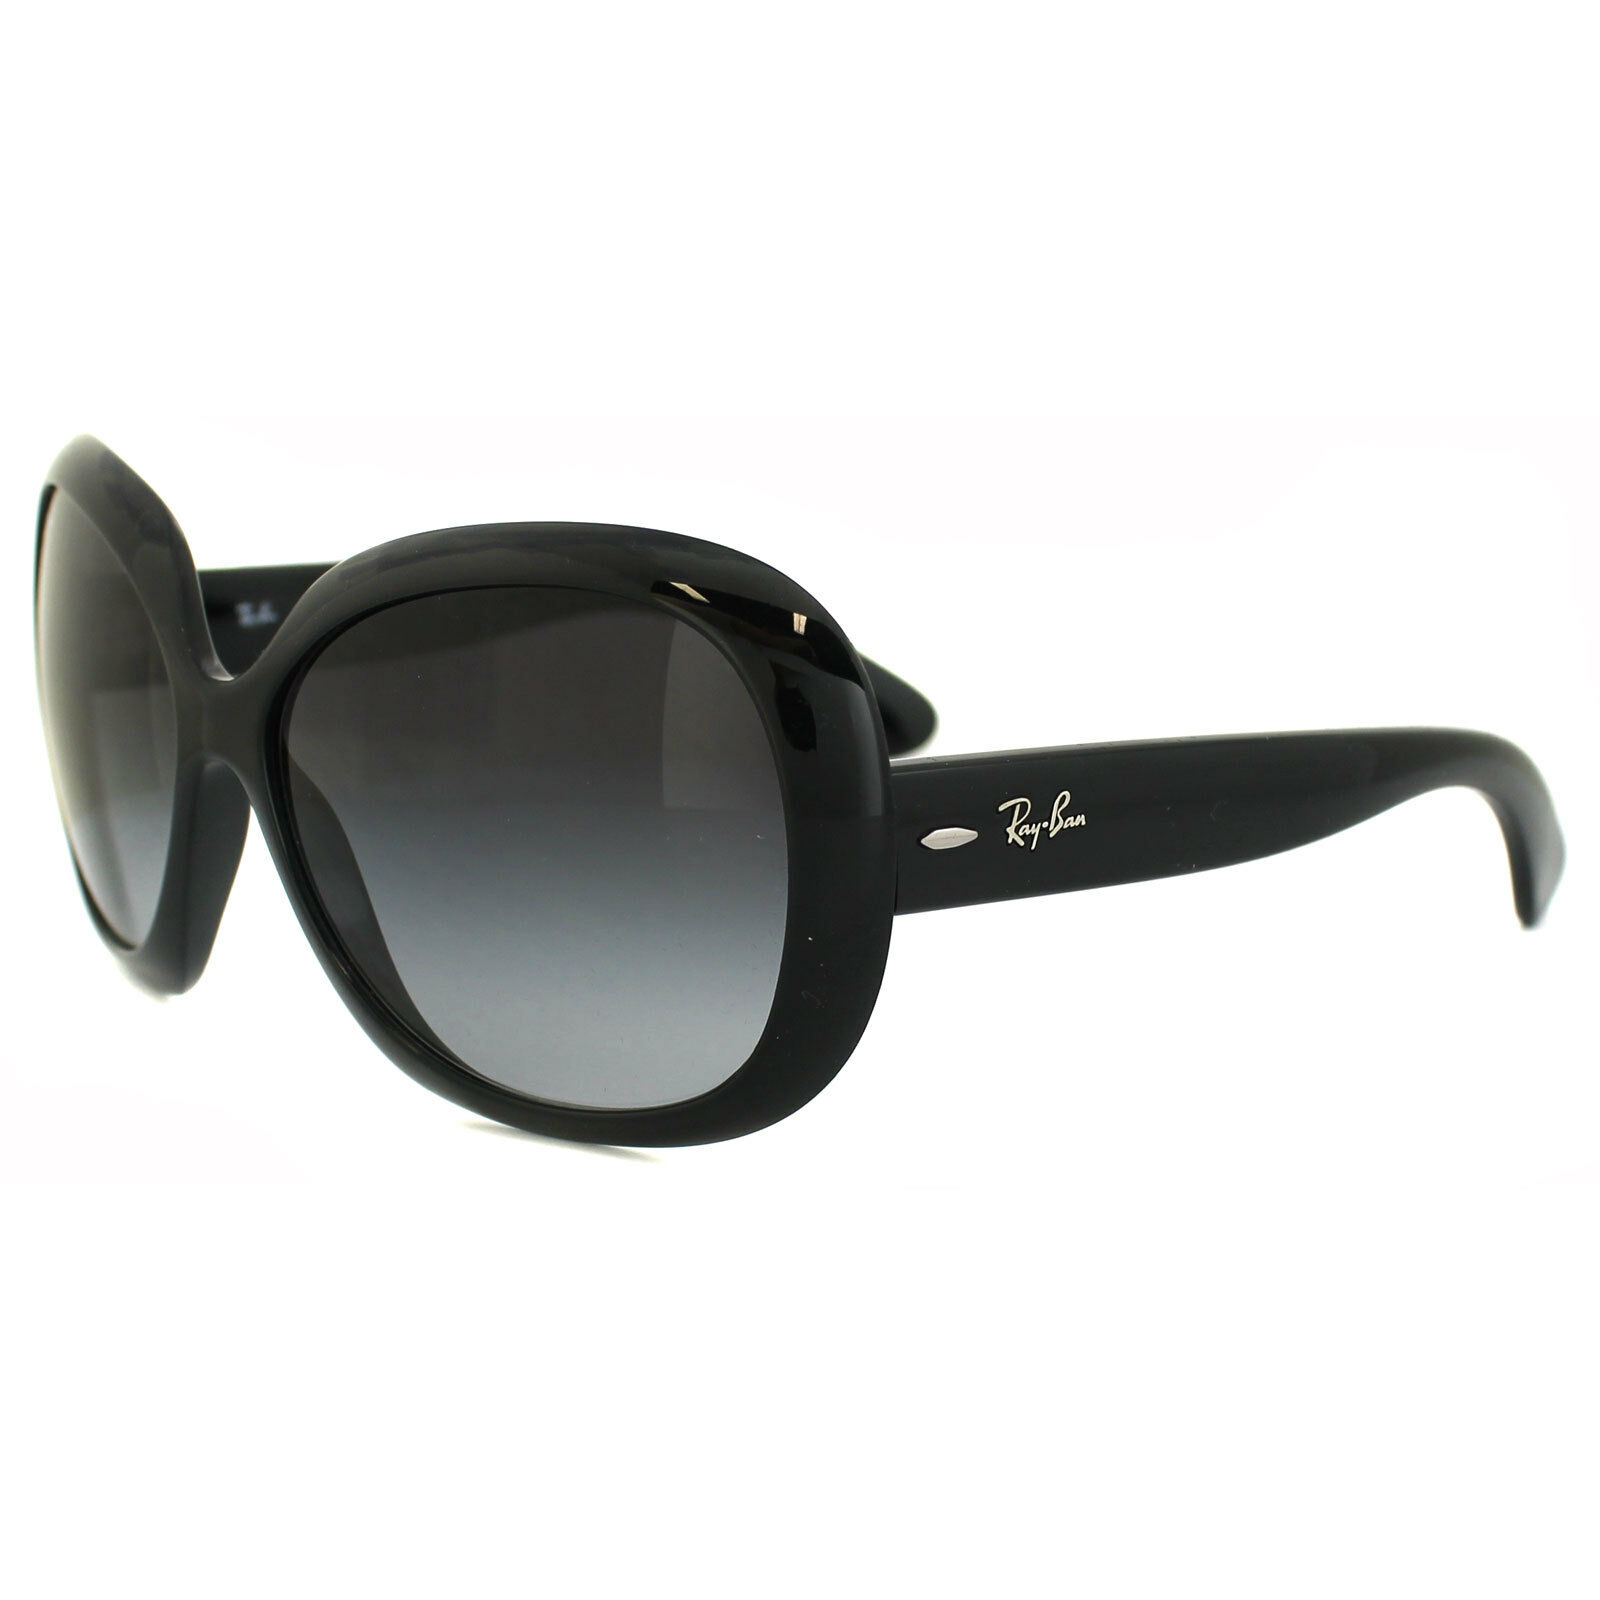 8fdec87509 Sunglasses Ray-Ban Lady Jackie OHH II Rb4098 601/8g 60 RAYBAN for ...